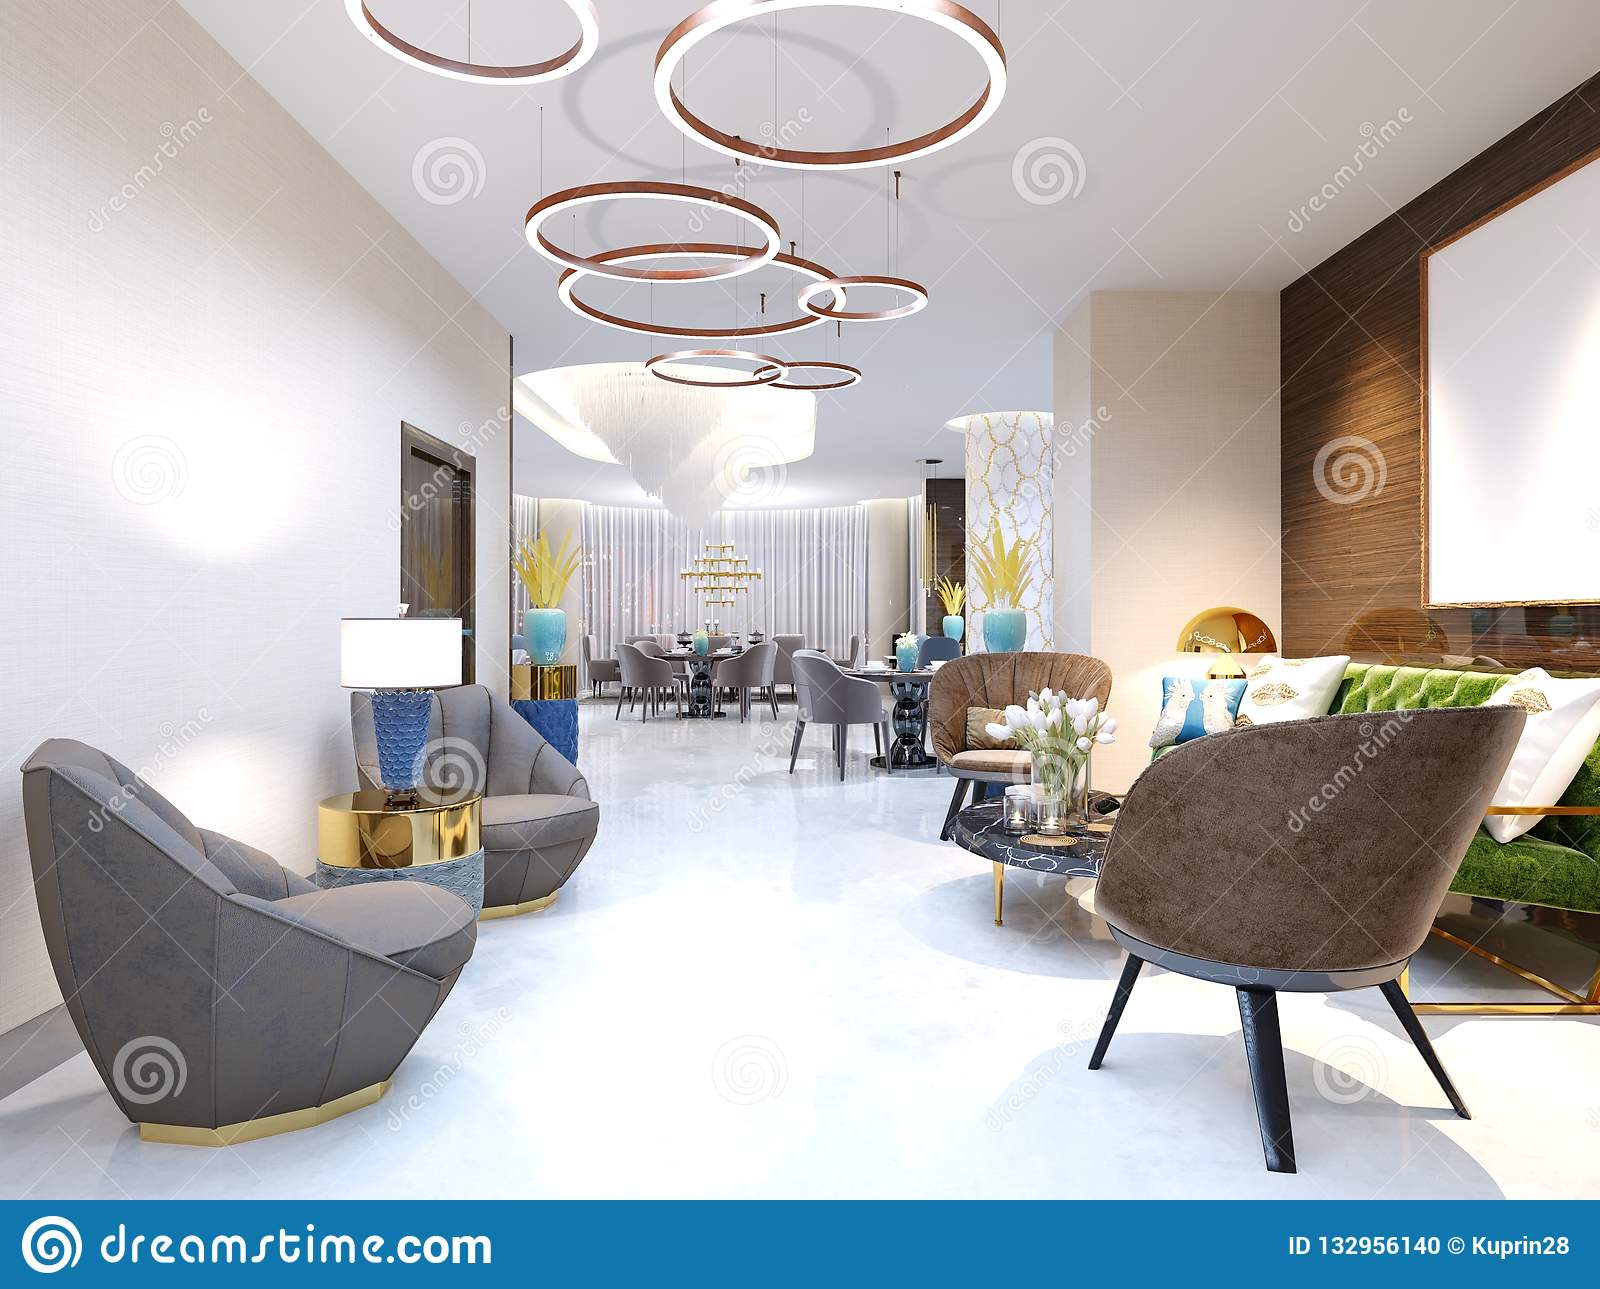 Terrific A Modern Hotel With A Reception Area And Lounge With Large Camellatalisay Diy Chair Ideas Camellatalisaycom